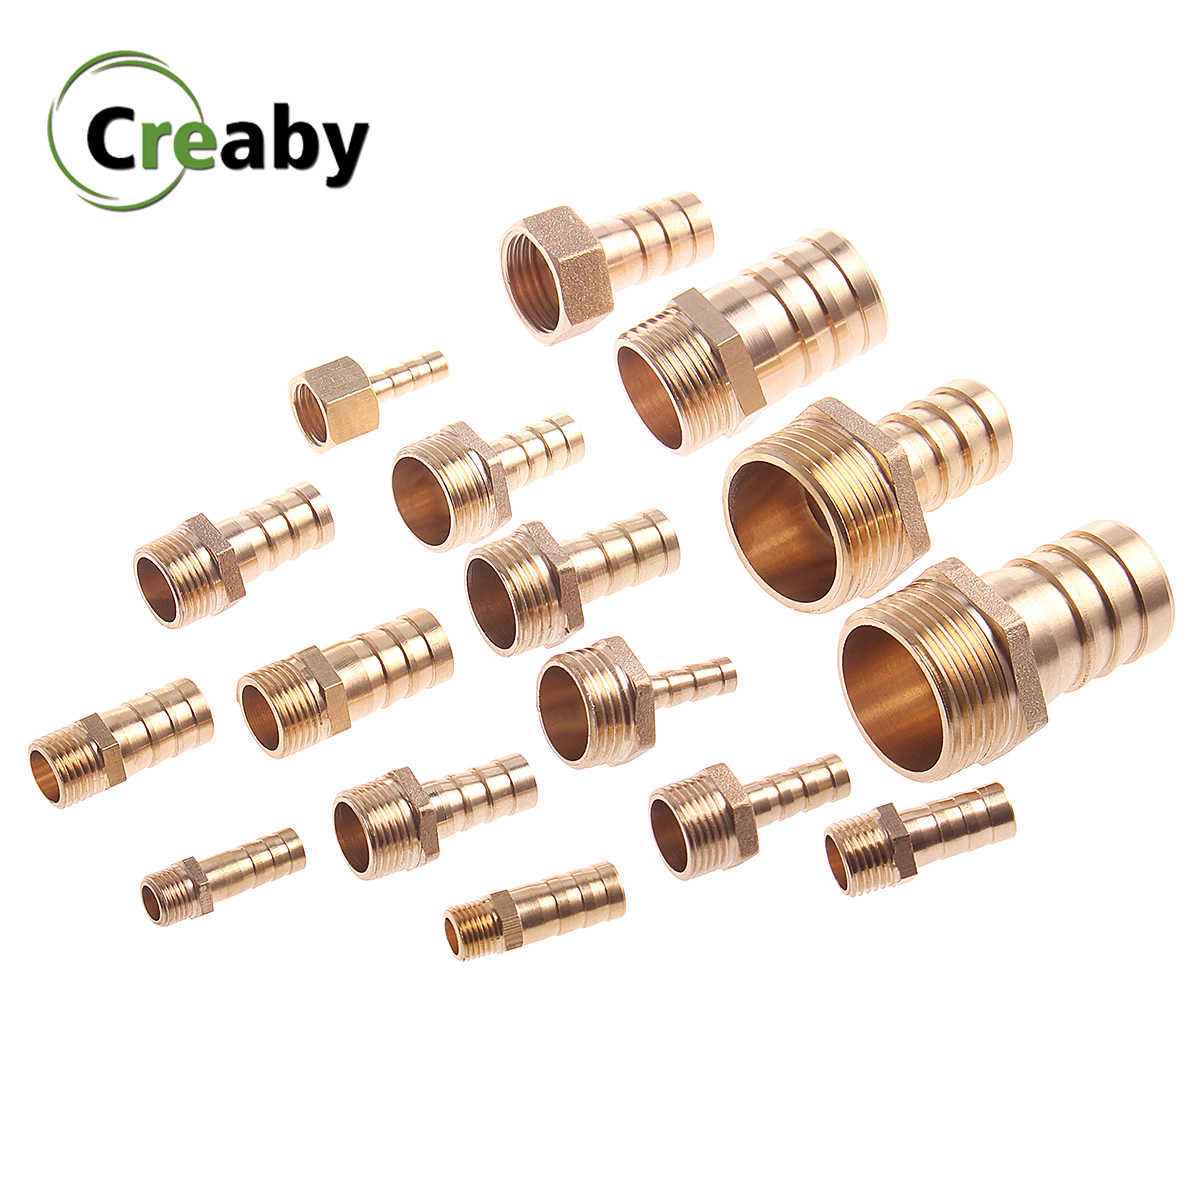 "Brass Pipe Fitting 6mm - 25mm 8 10mm Hose Barb Tail 1/8"" 1/4"" 3/8"" 1/2"" 3/4"" 1"" BSP Male Connector Joint Copper Coupler Adapter"